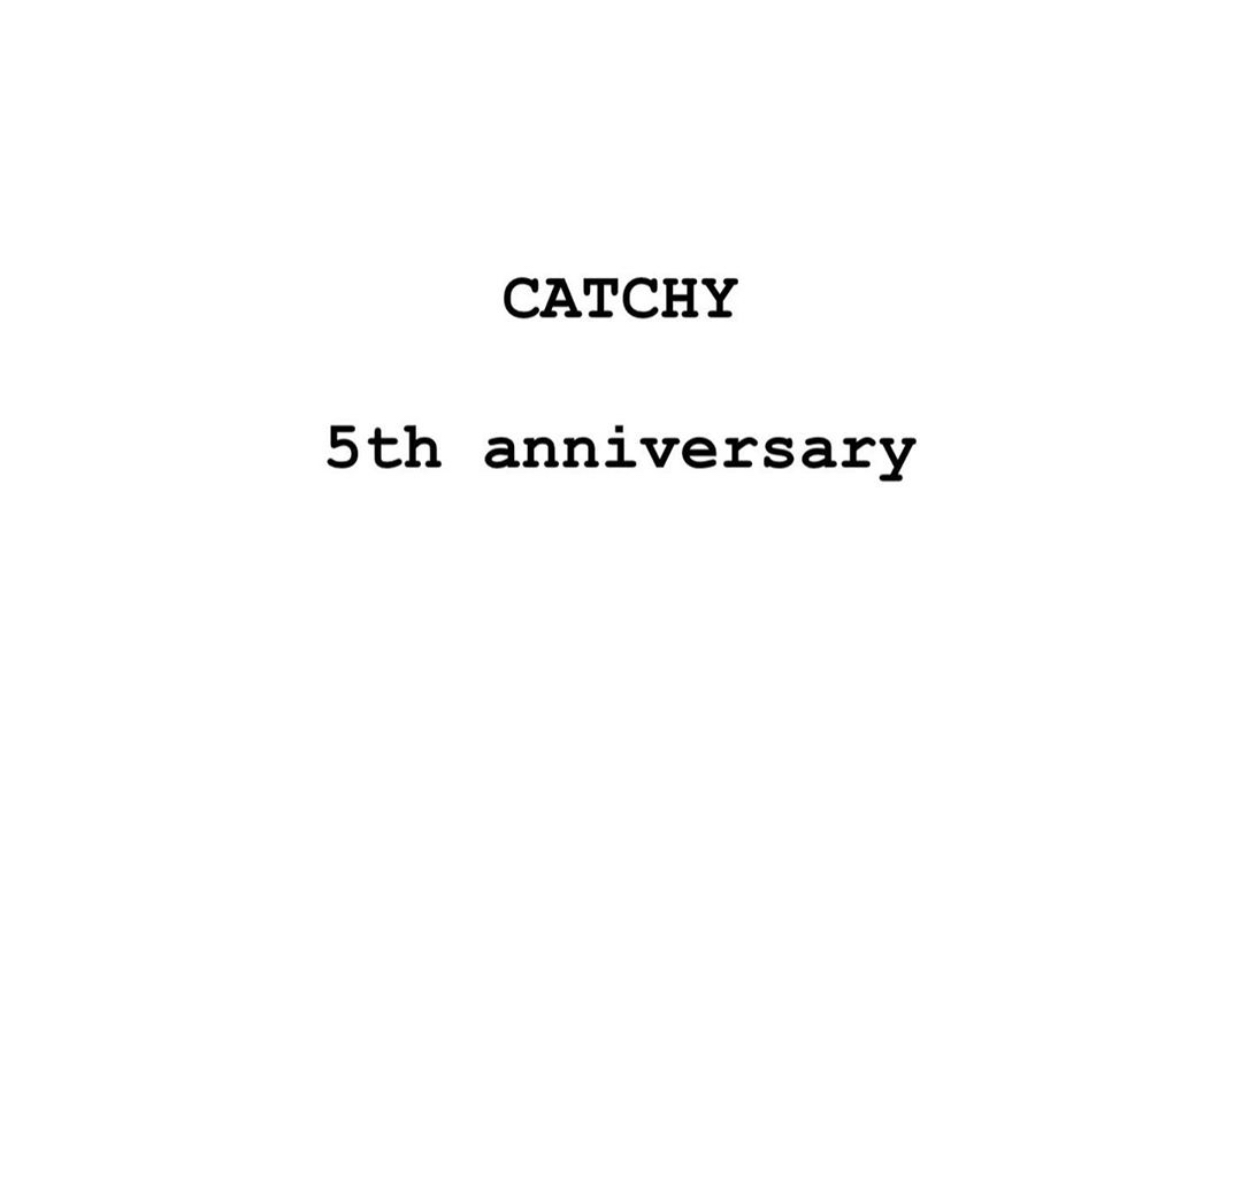 CATCHY 5th anniversary